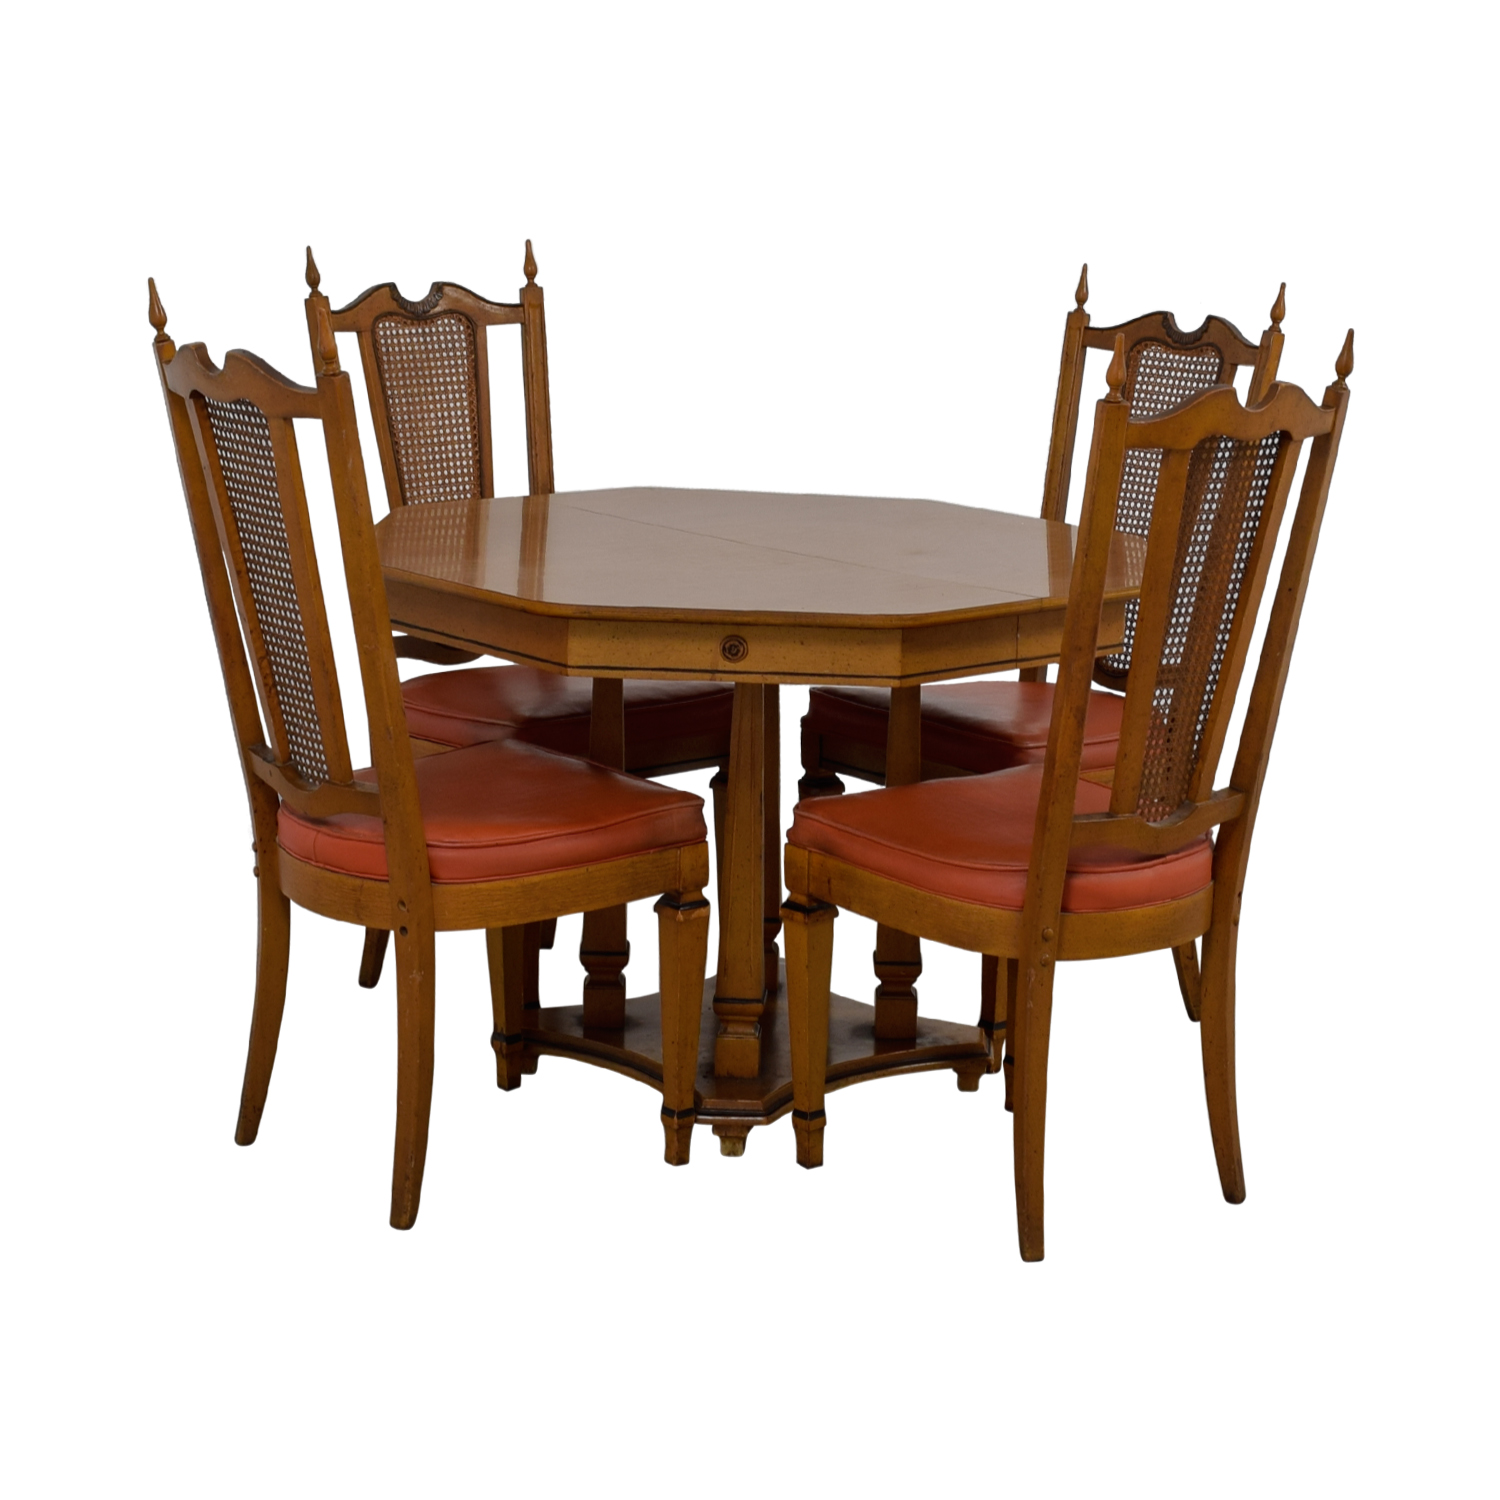 Walter Wabash Walter Wabash Extendable Wood Dining Set with Red Upholstered Canned Chairs discount